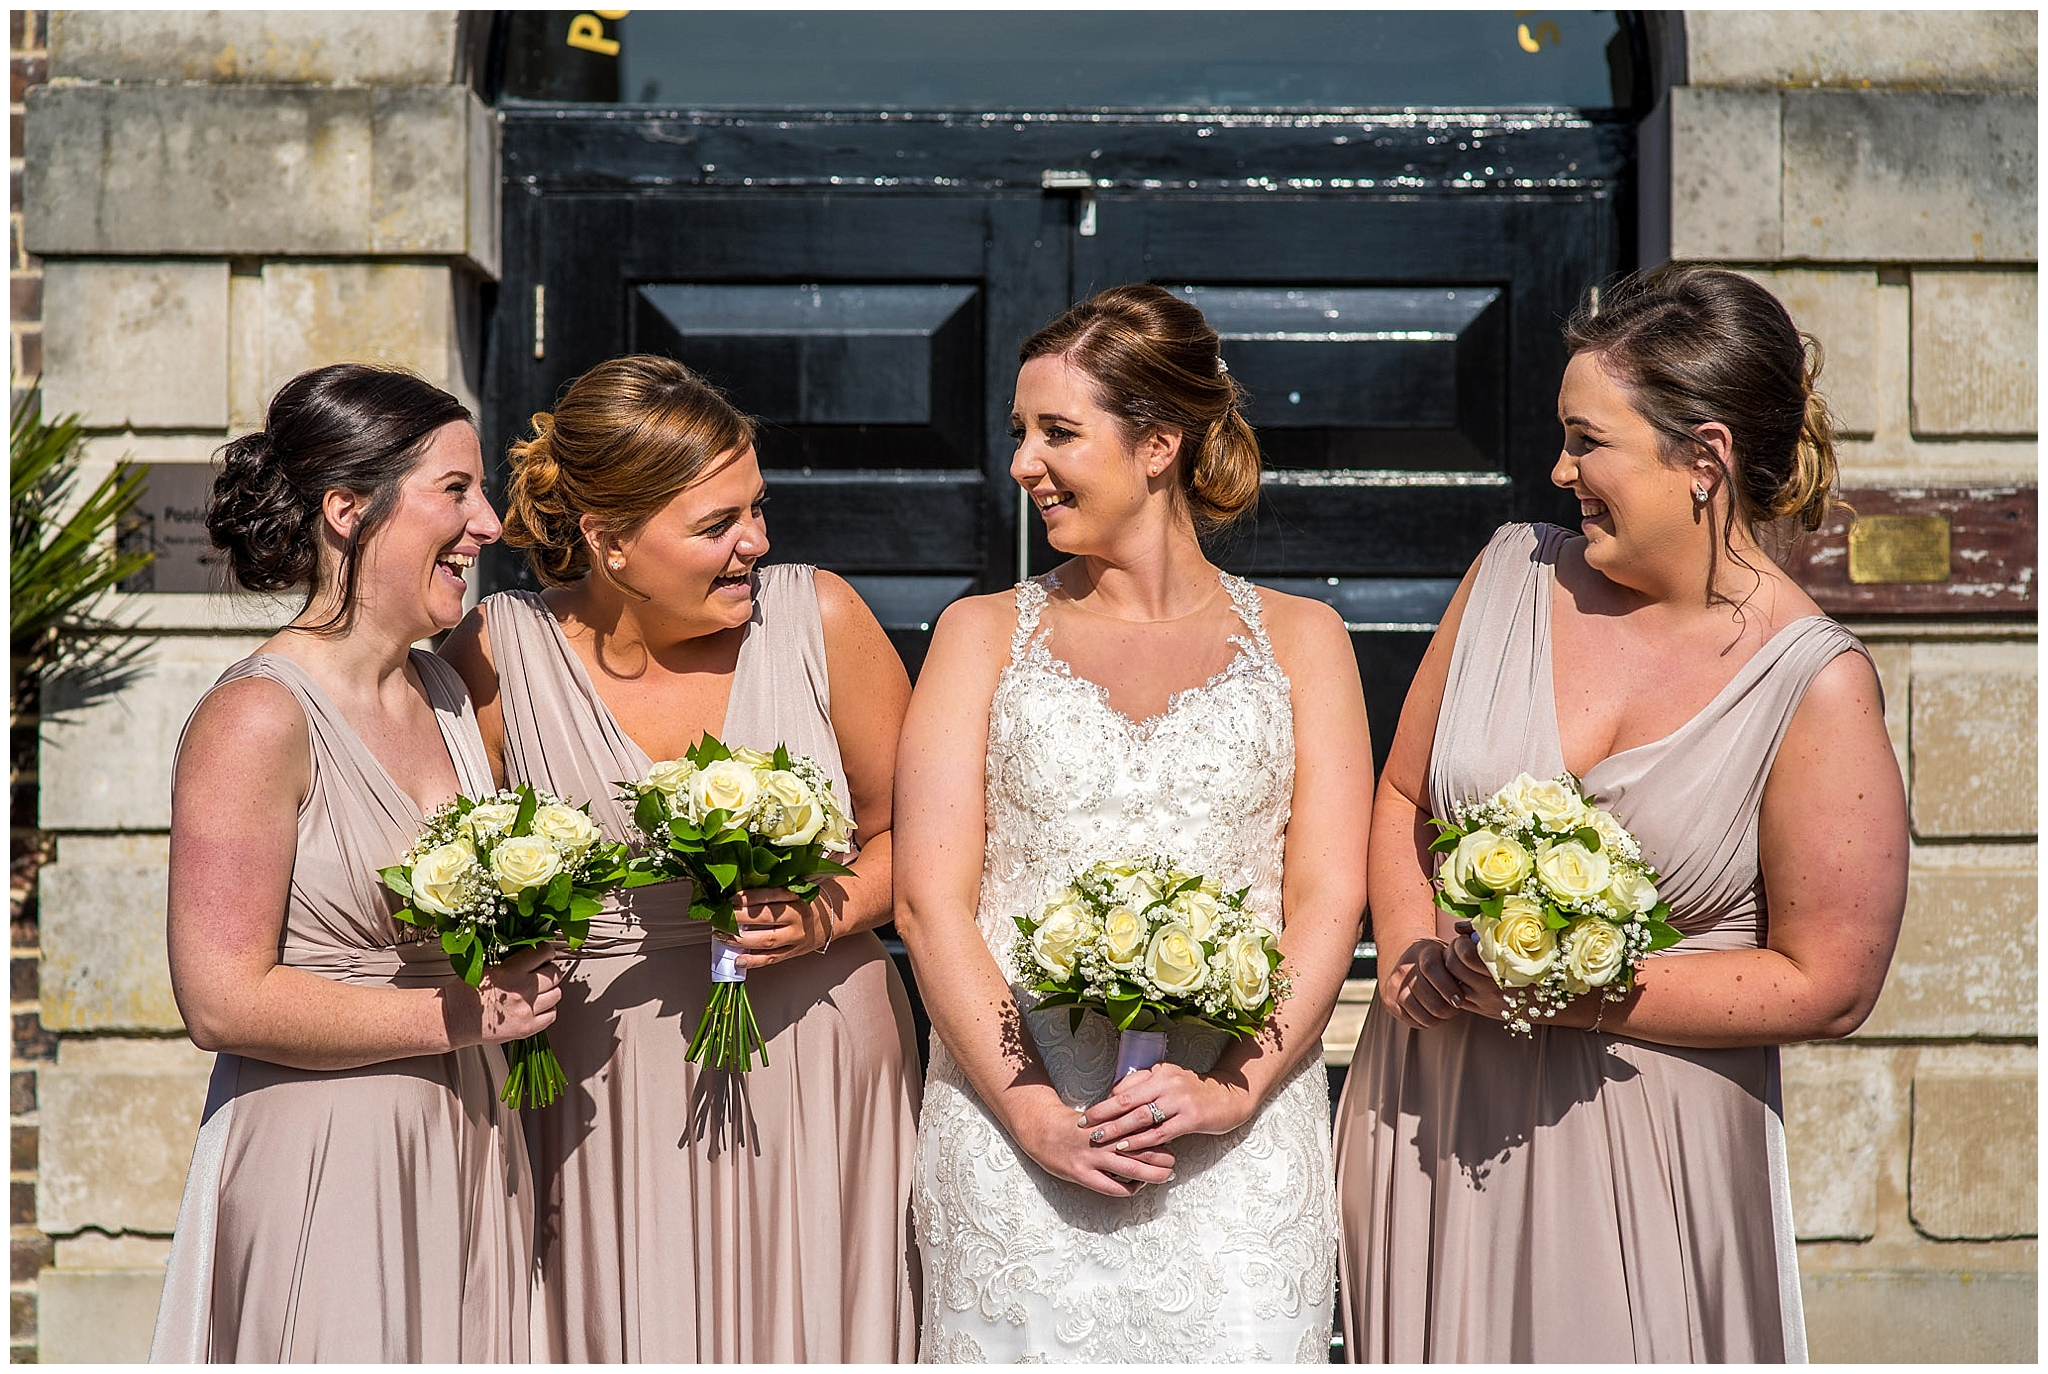 Bridesmaids relaxed photo